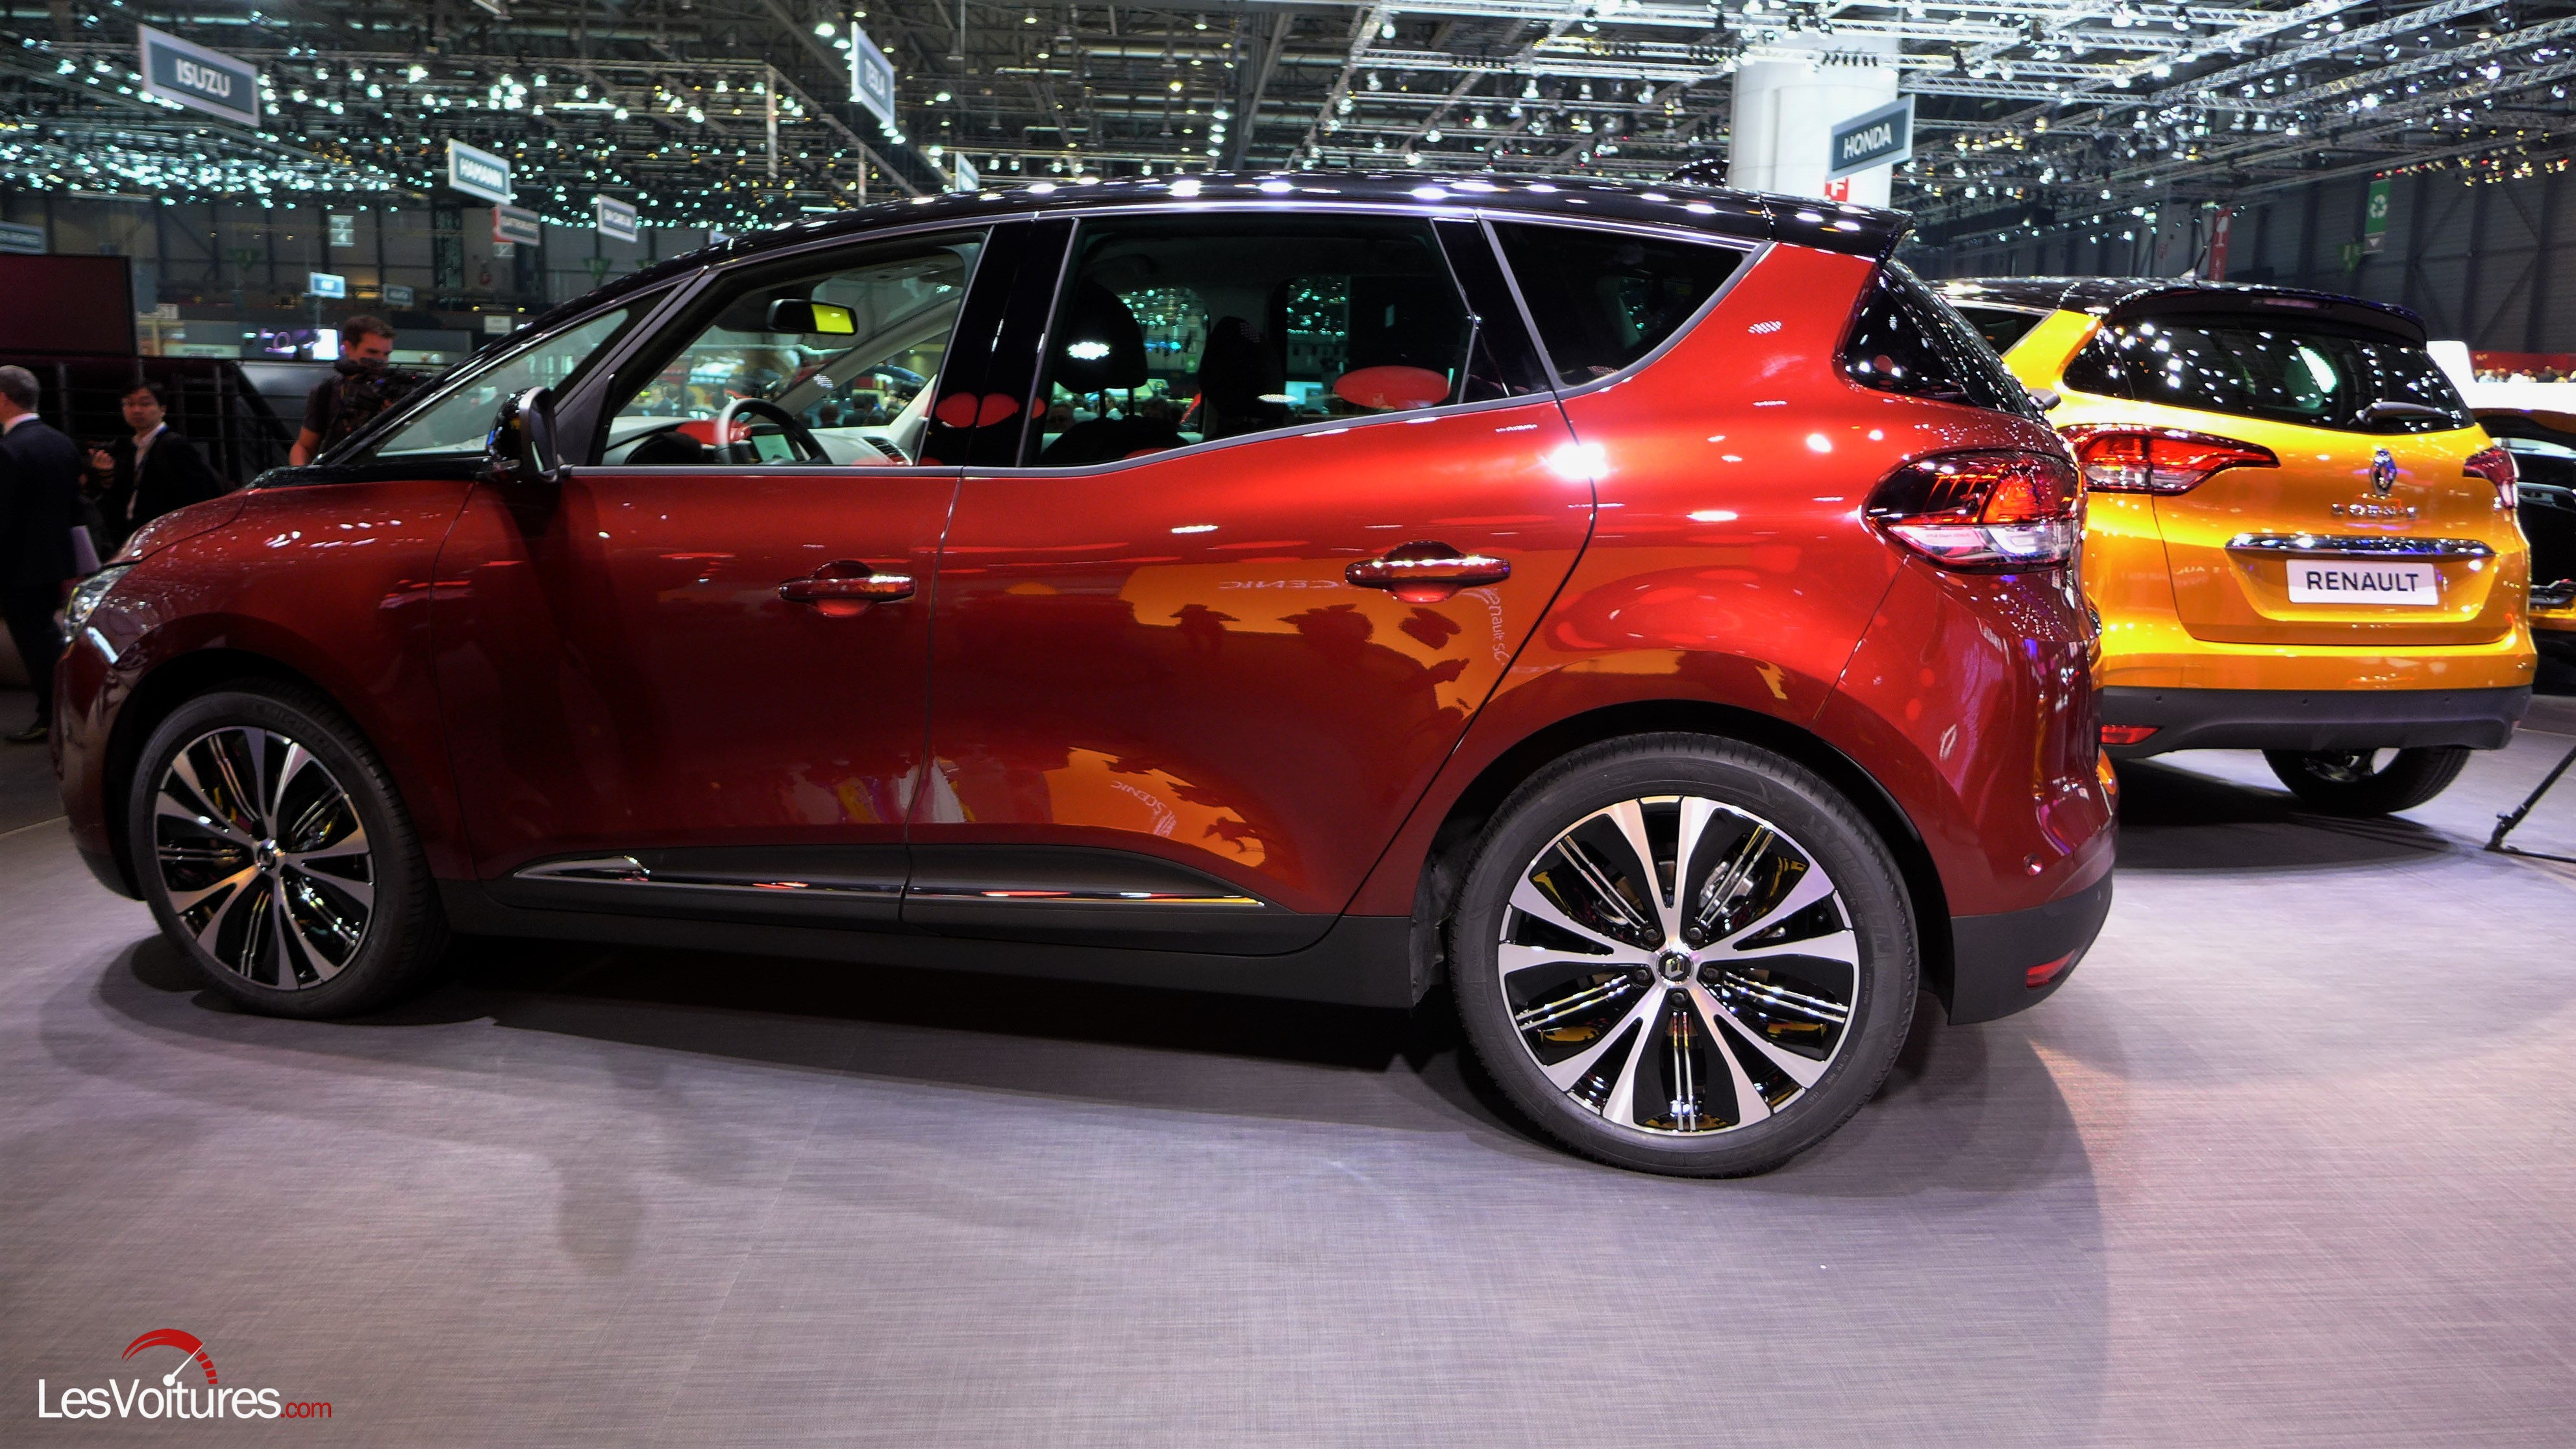 Renault Scenic 4 2016 Geneve 12 Les Voitures